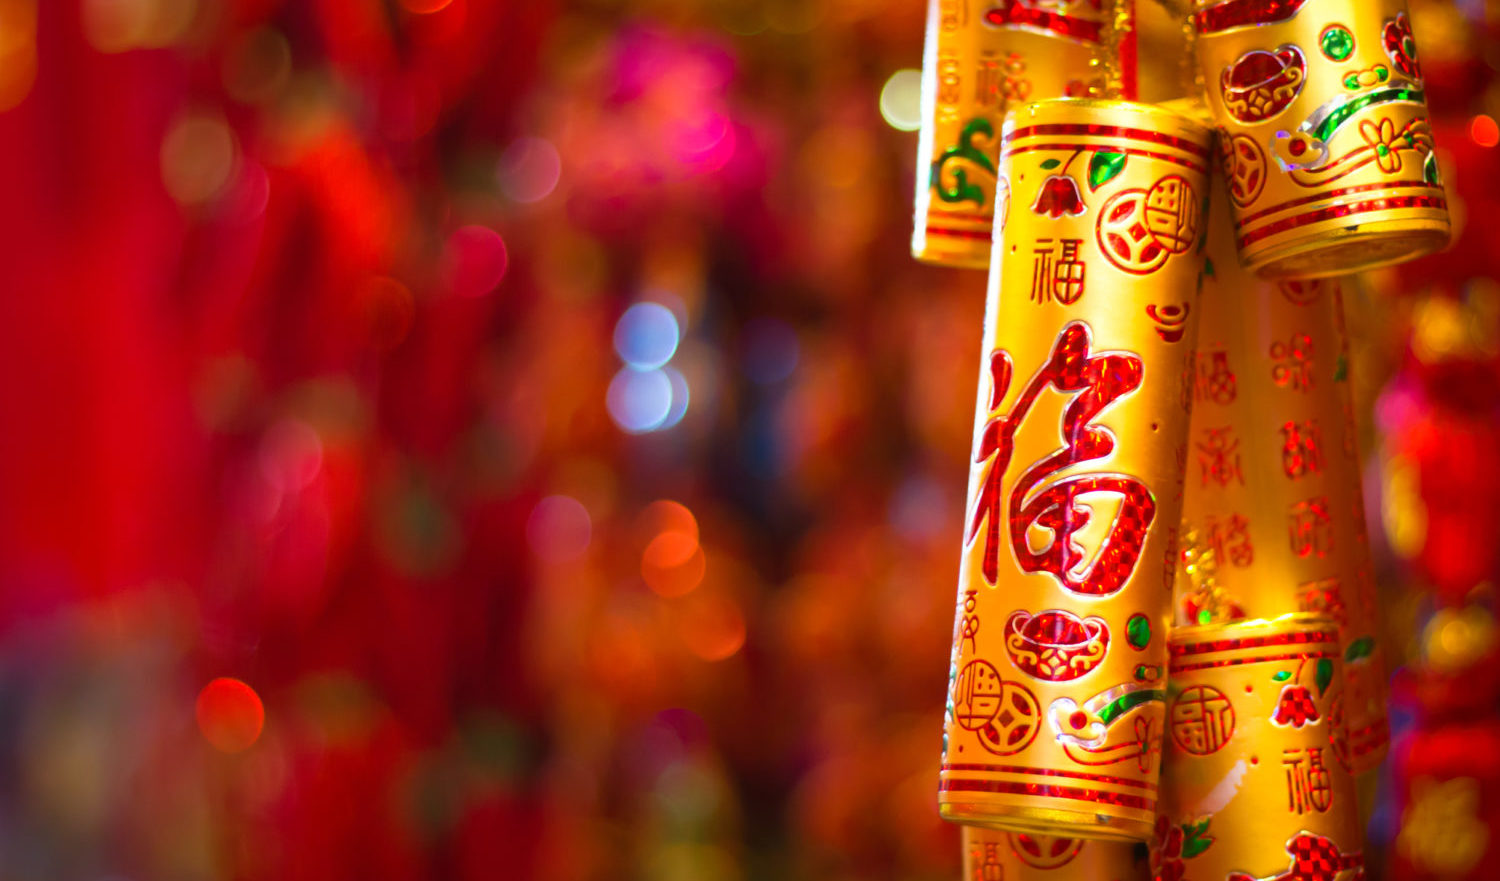 Colorful Firecracker with Traditional Chinese script and patterns